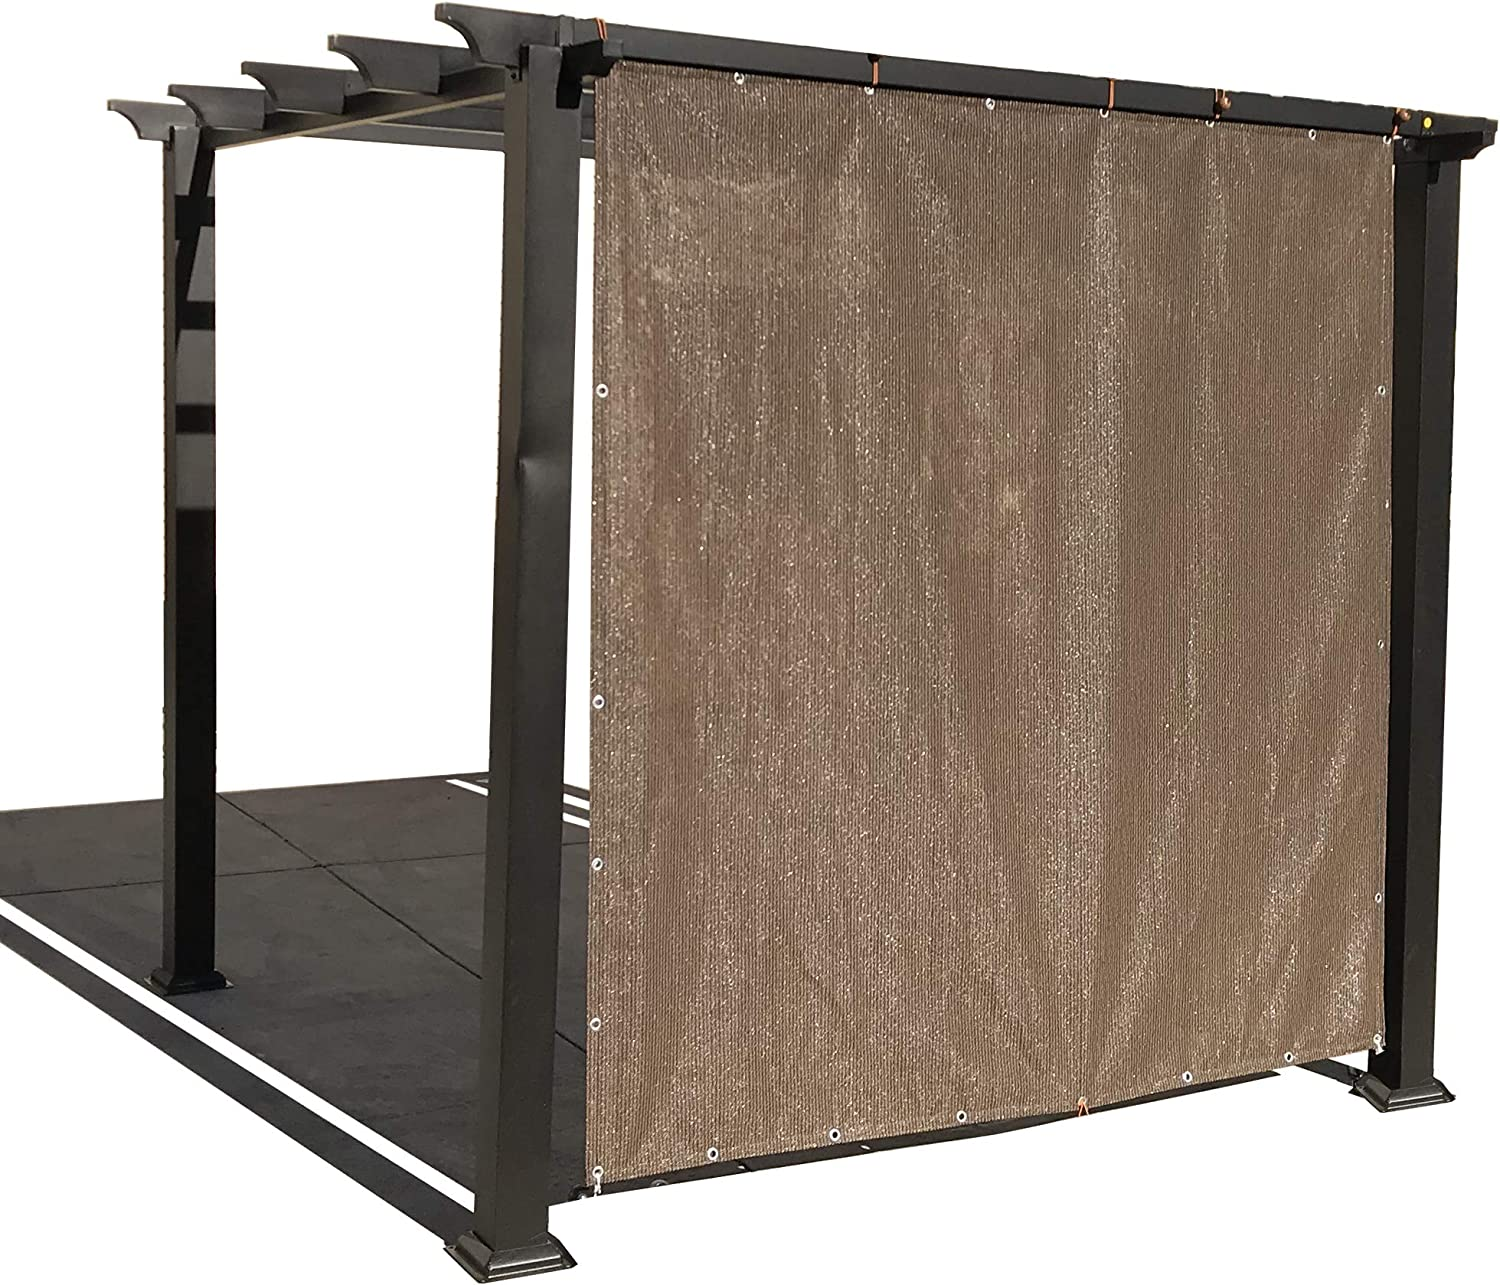 Alion Home Sun Shade Privacy Panel with Grommets and Hems on 4 Sides for Patio, Awning, Window, Pergola or Gazebo - Mocha Brown (8' W x 6' H)